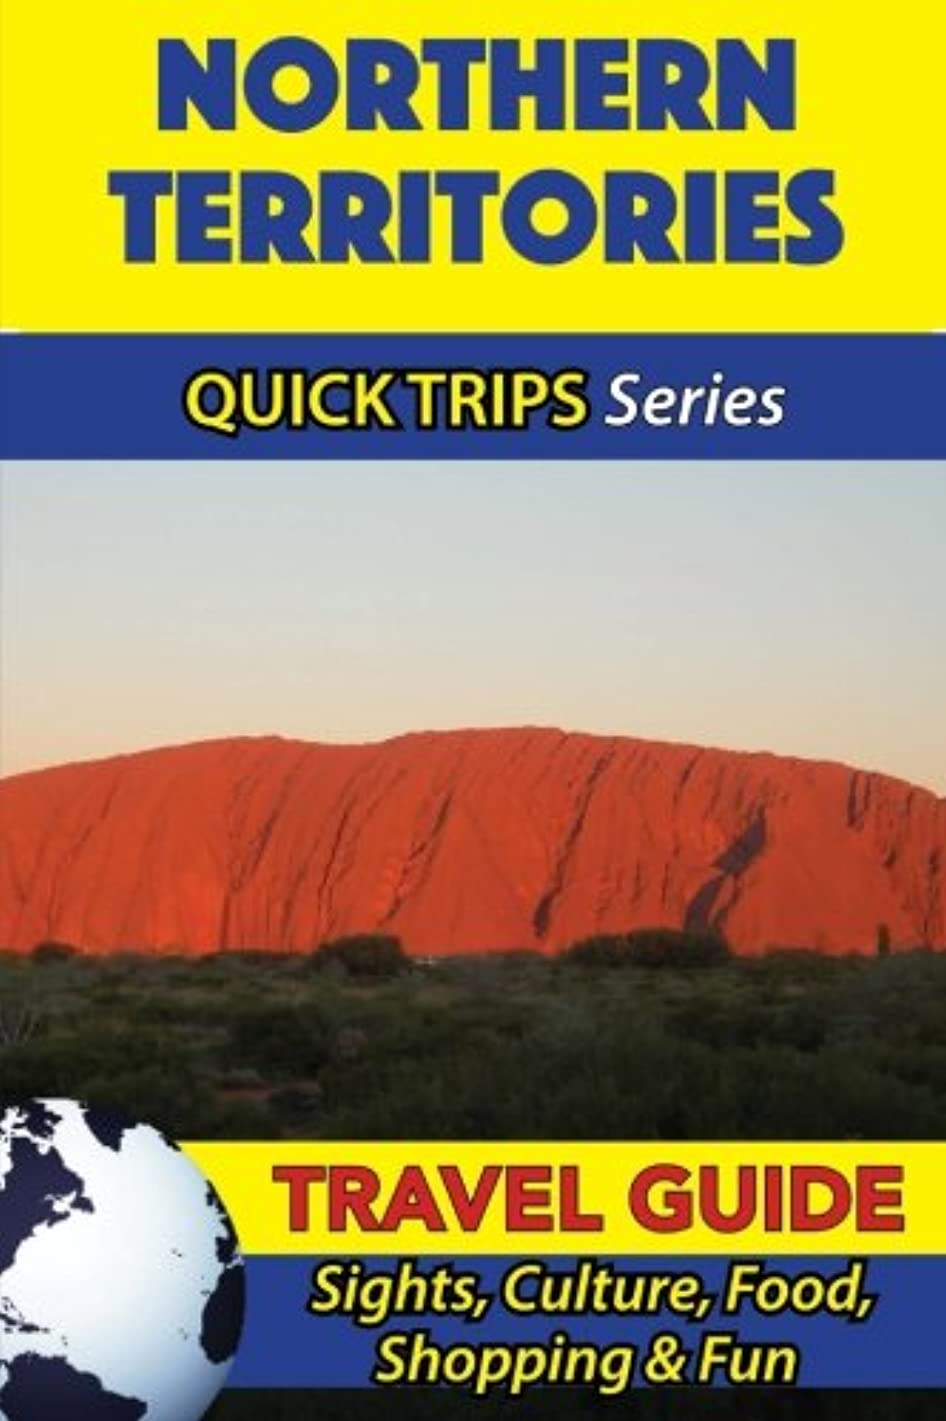 Northern Territories Travel Guide (Quick Trips Series): Sights, Culture, Food, Shopping & Fun